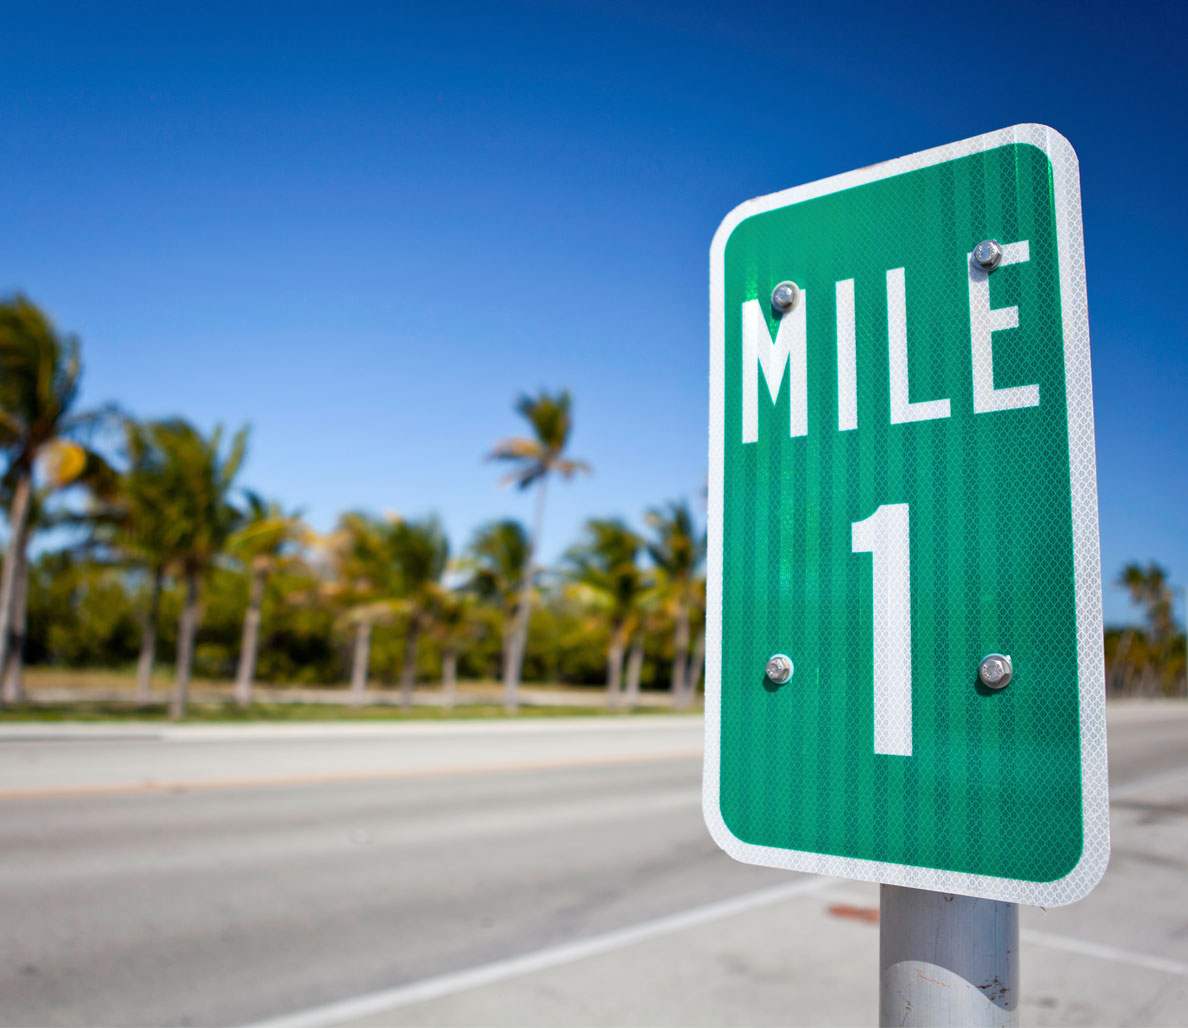 5 Weirdest Ways to Travel a Mile - Mile Records